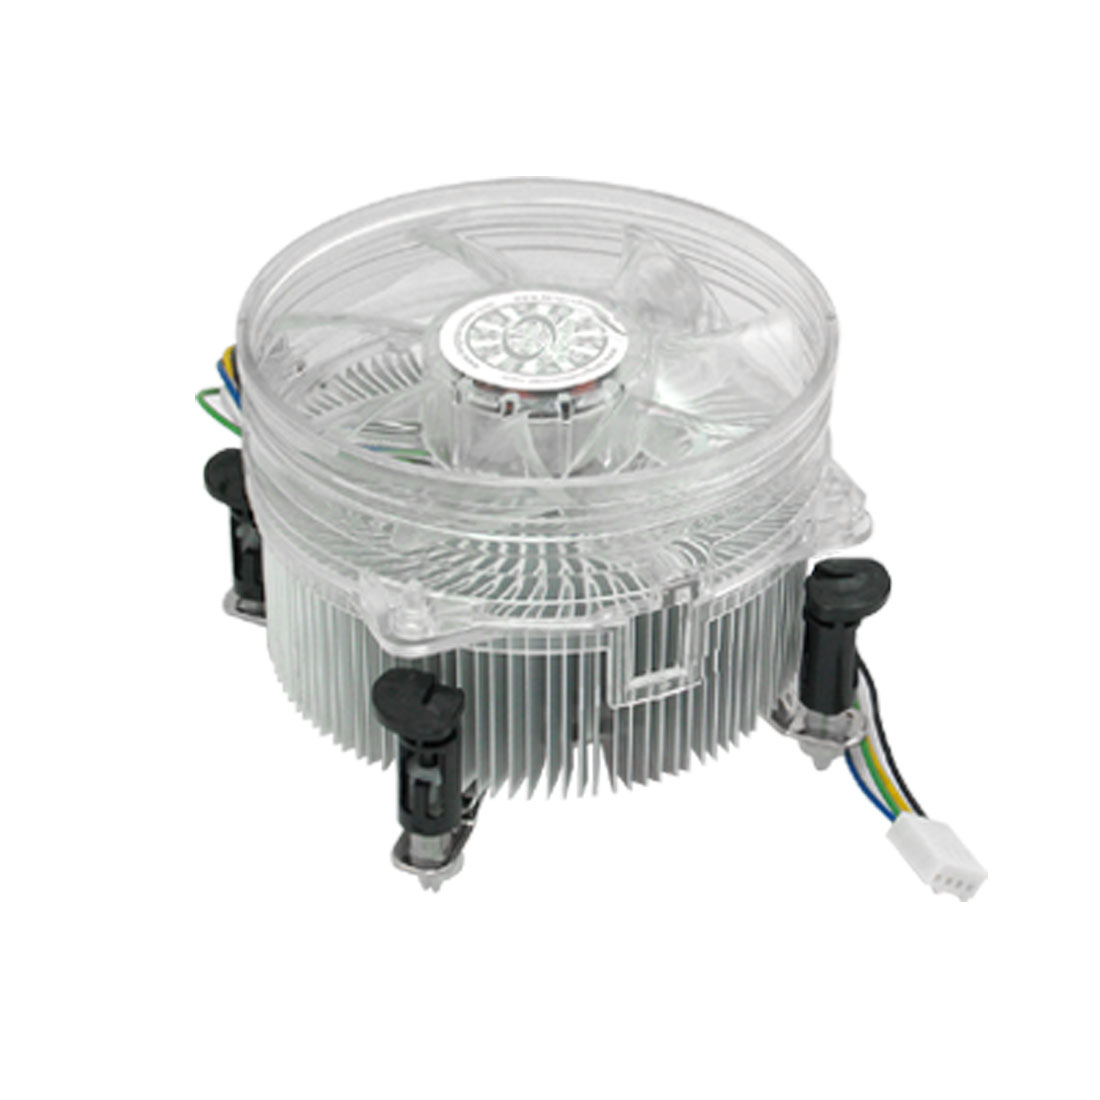 Clear-White-Cooling-Fan-CPU-Cooler-for-Intel-Core2-LGA775